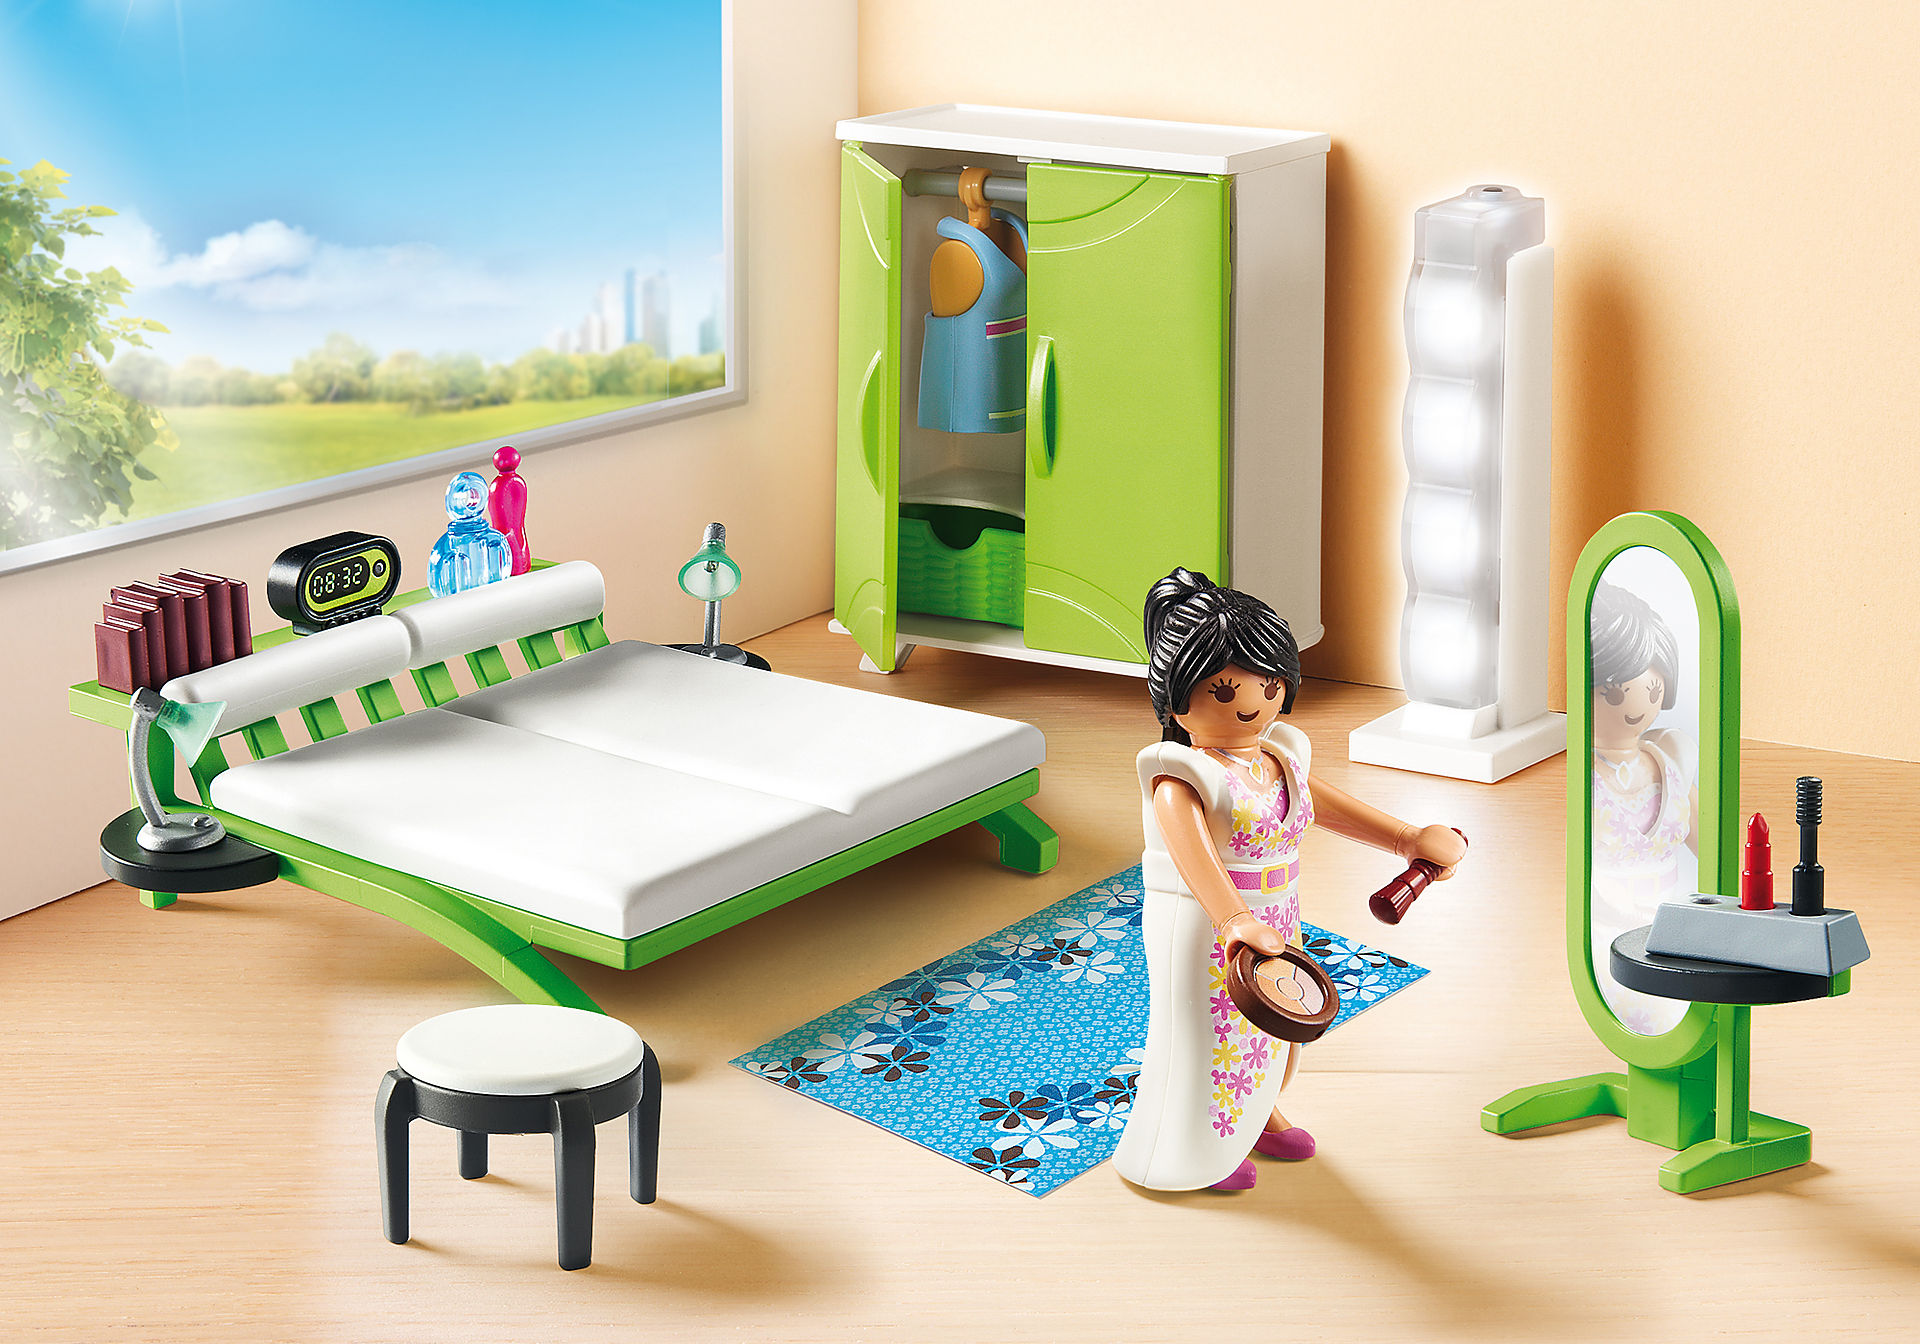 http://media.playmobil.com/i/playmobil/9271_product_detail/Sovrum